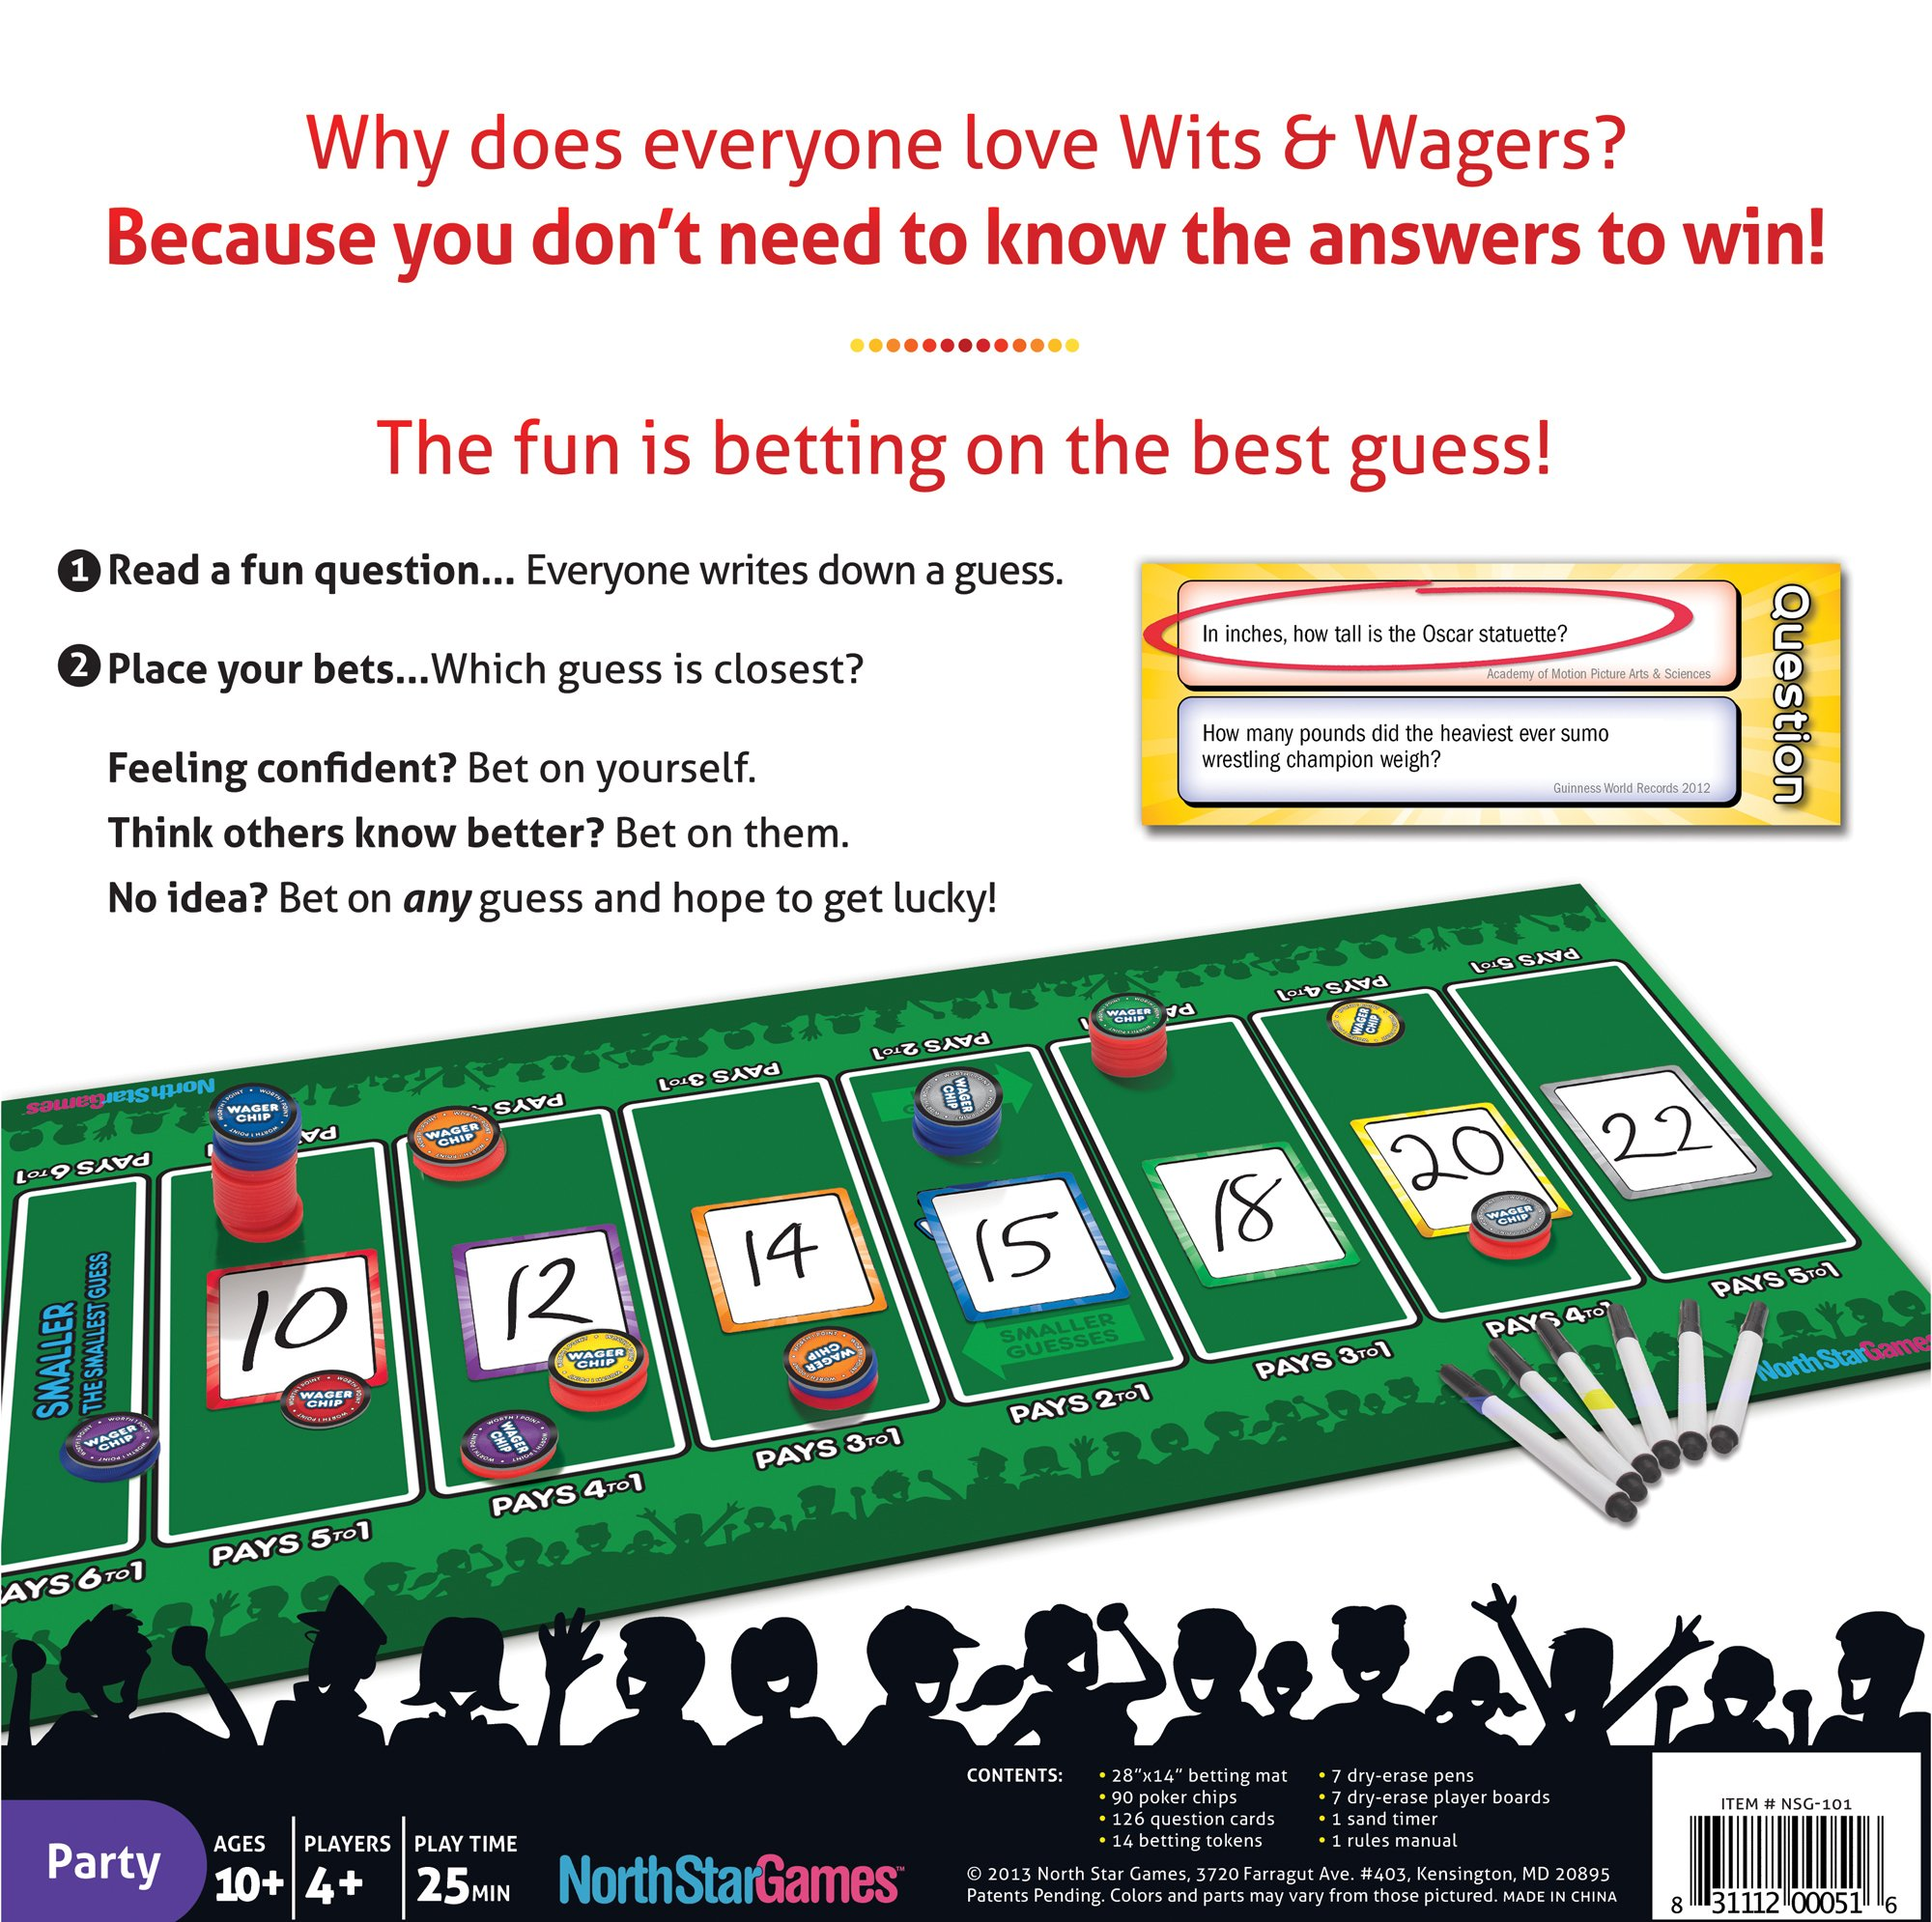 Wits & Wagers Deluxe by North Star Games (Image #2)